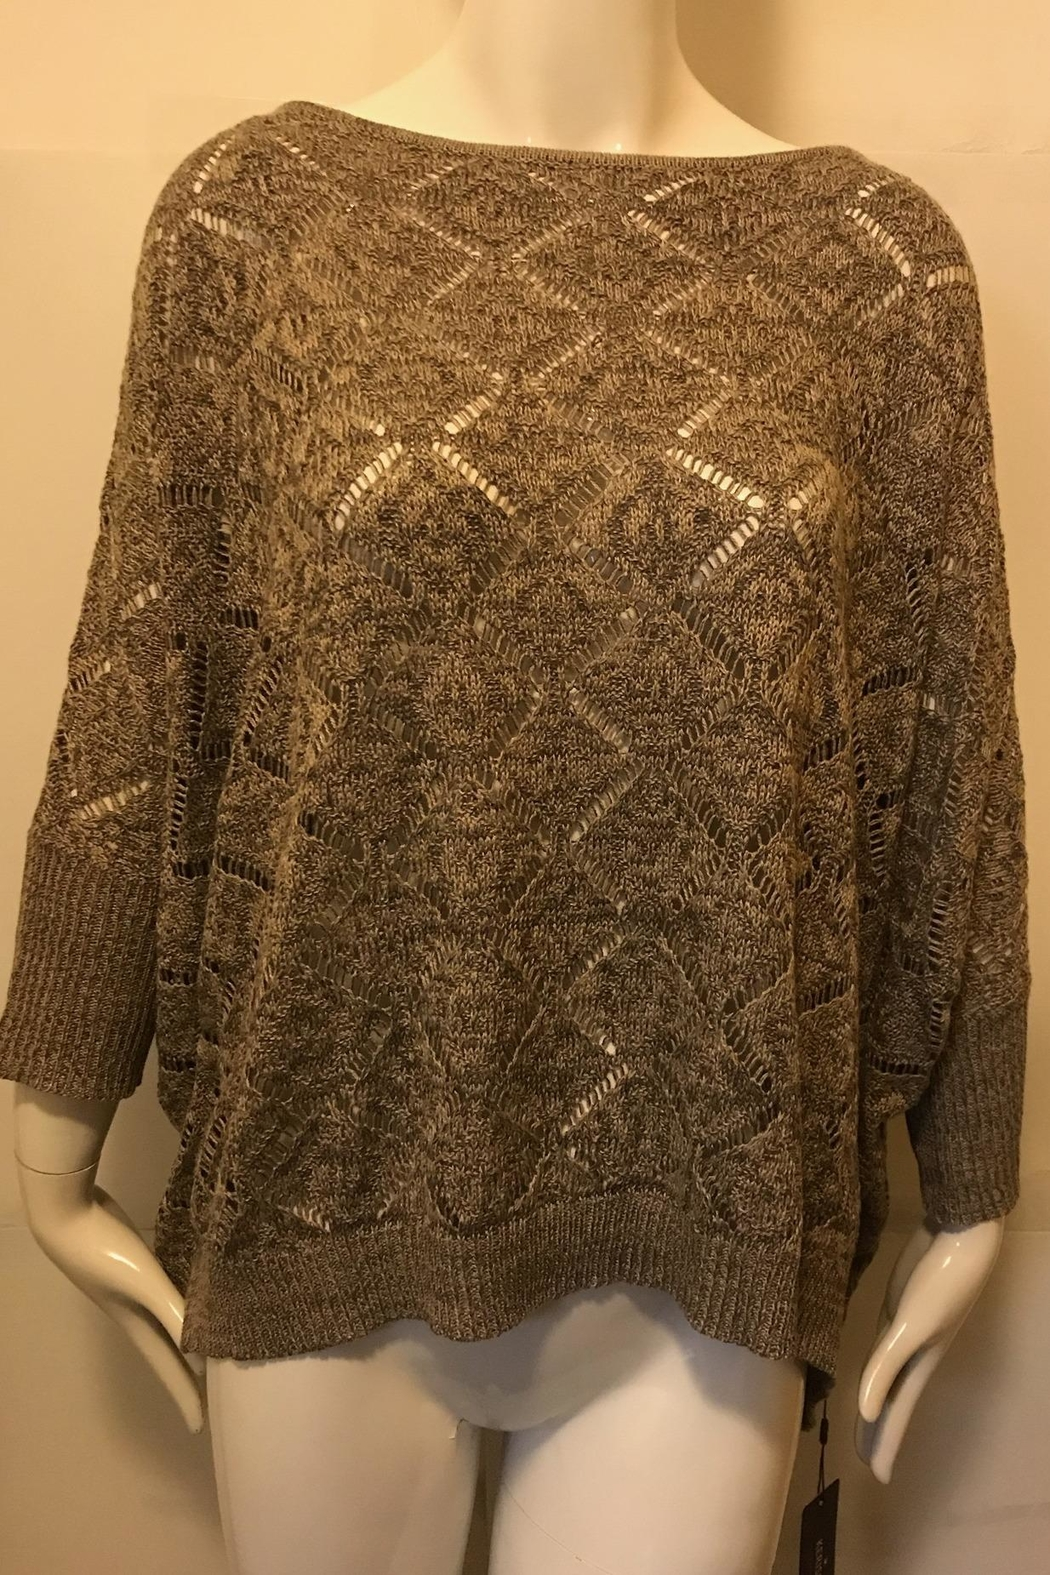 Kerisma Boat-Neck Knit Sweater - Main Image